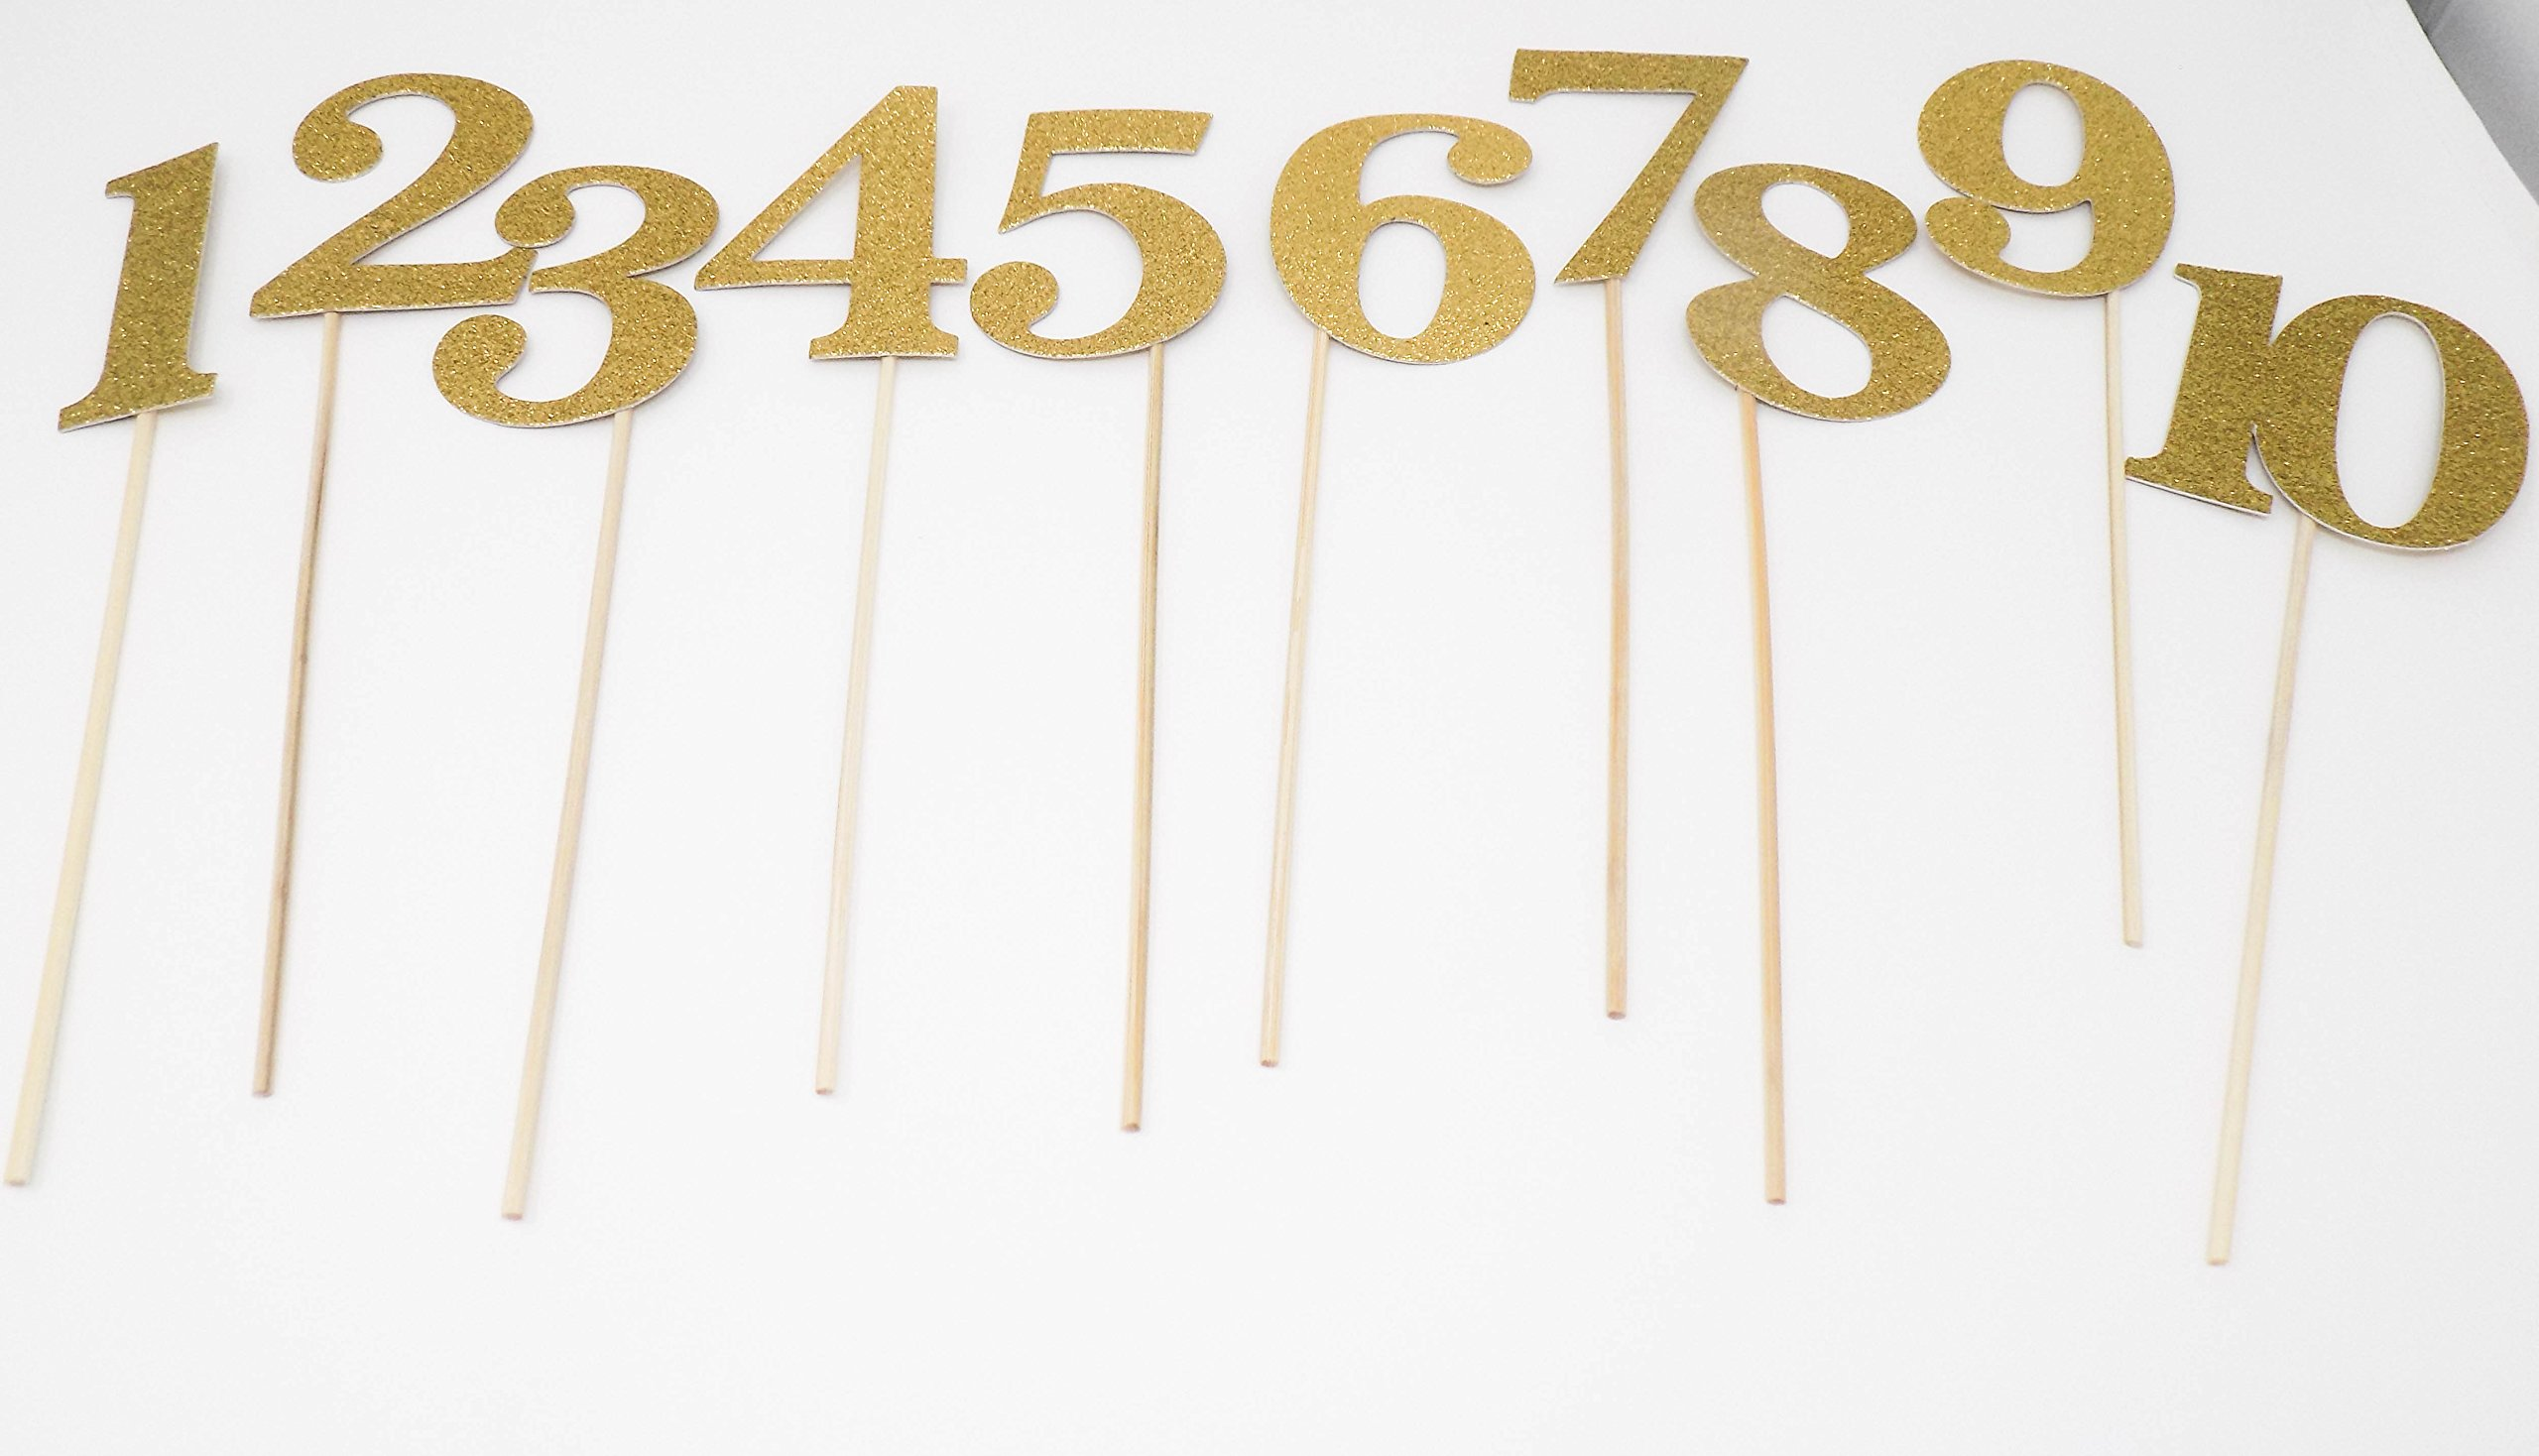 Table Number Wedding Centerpiece Sticks for DIY Reception Decor (Gold)